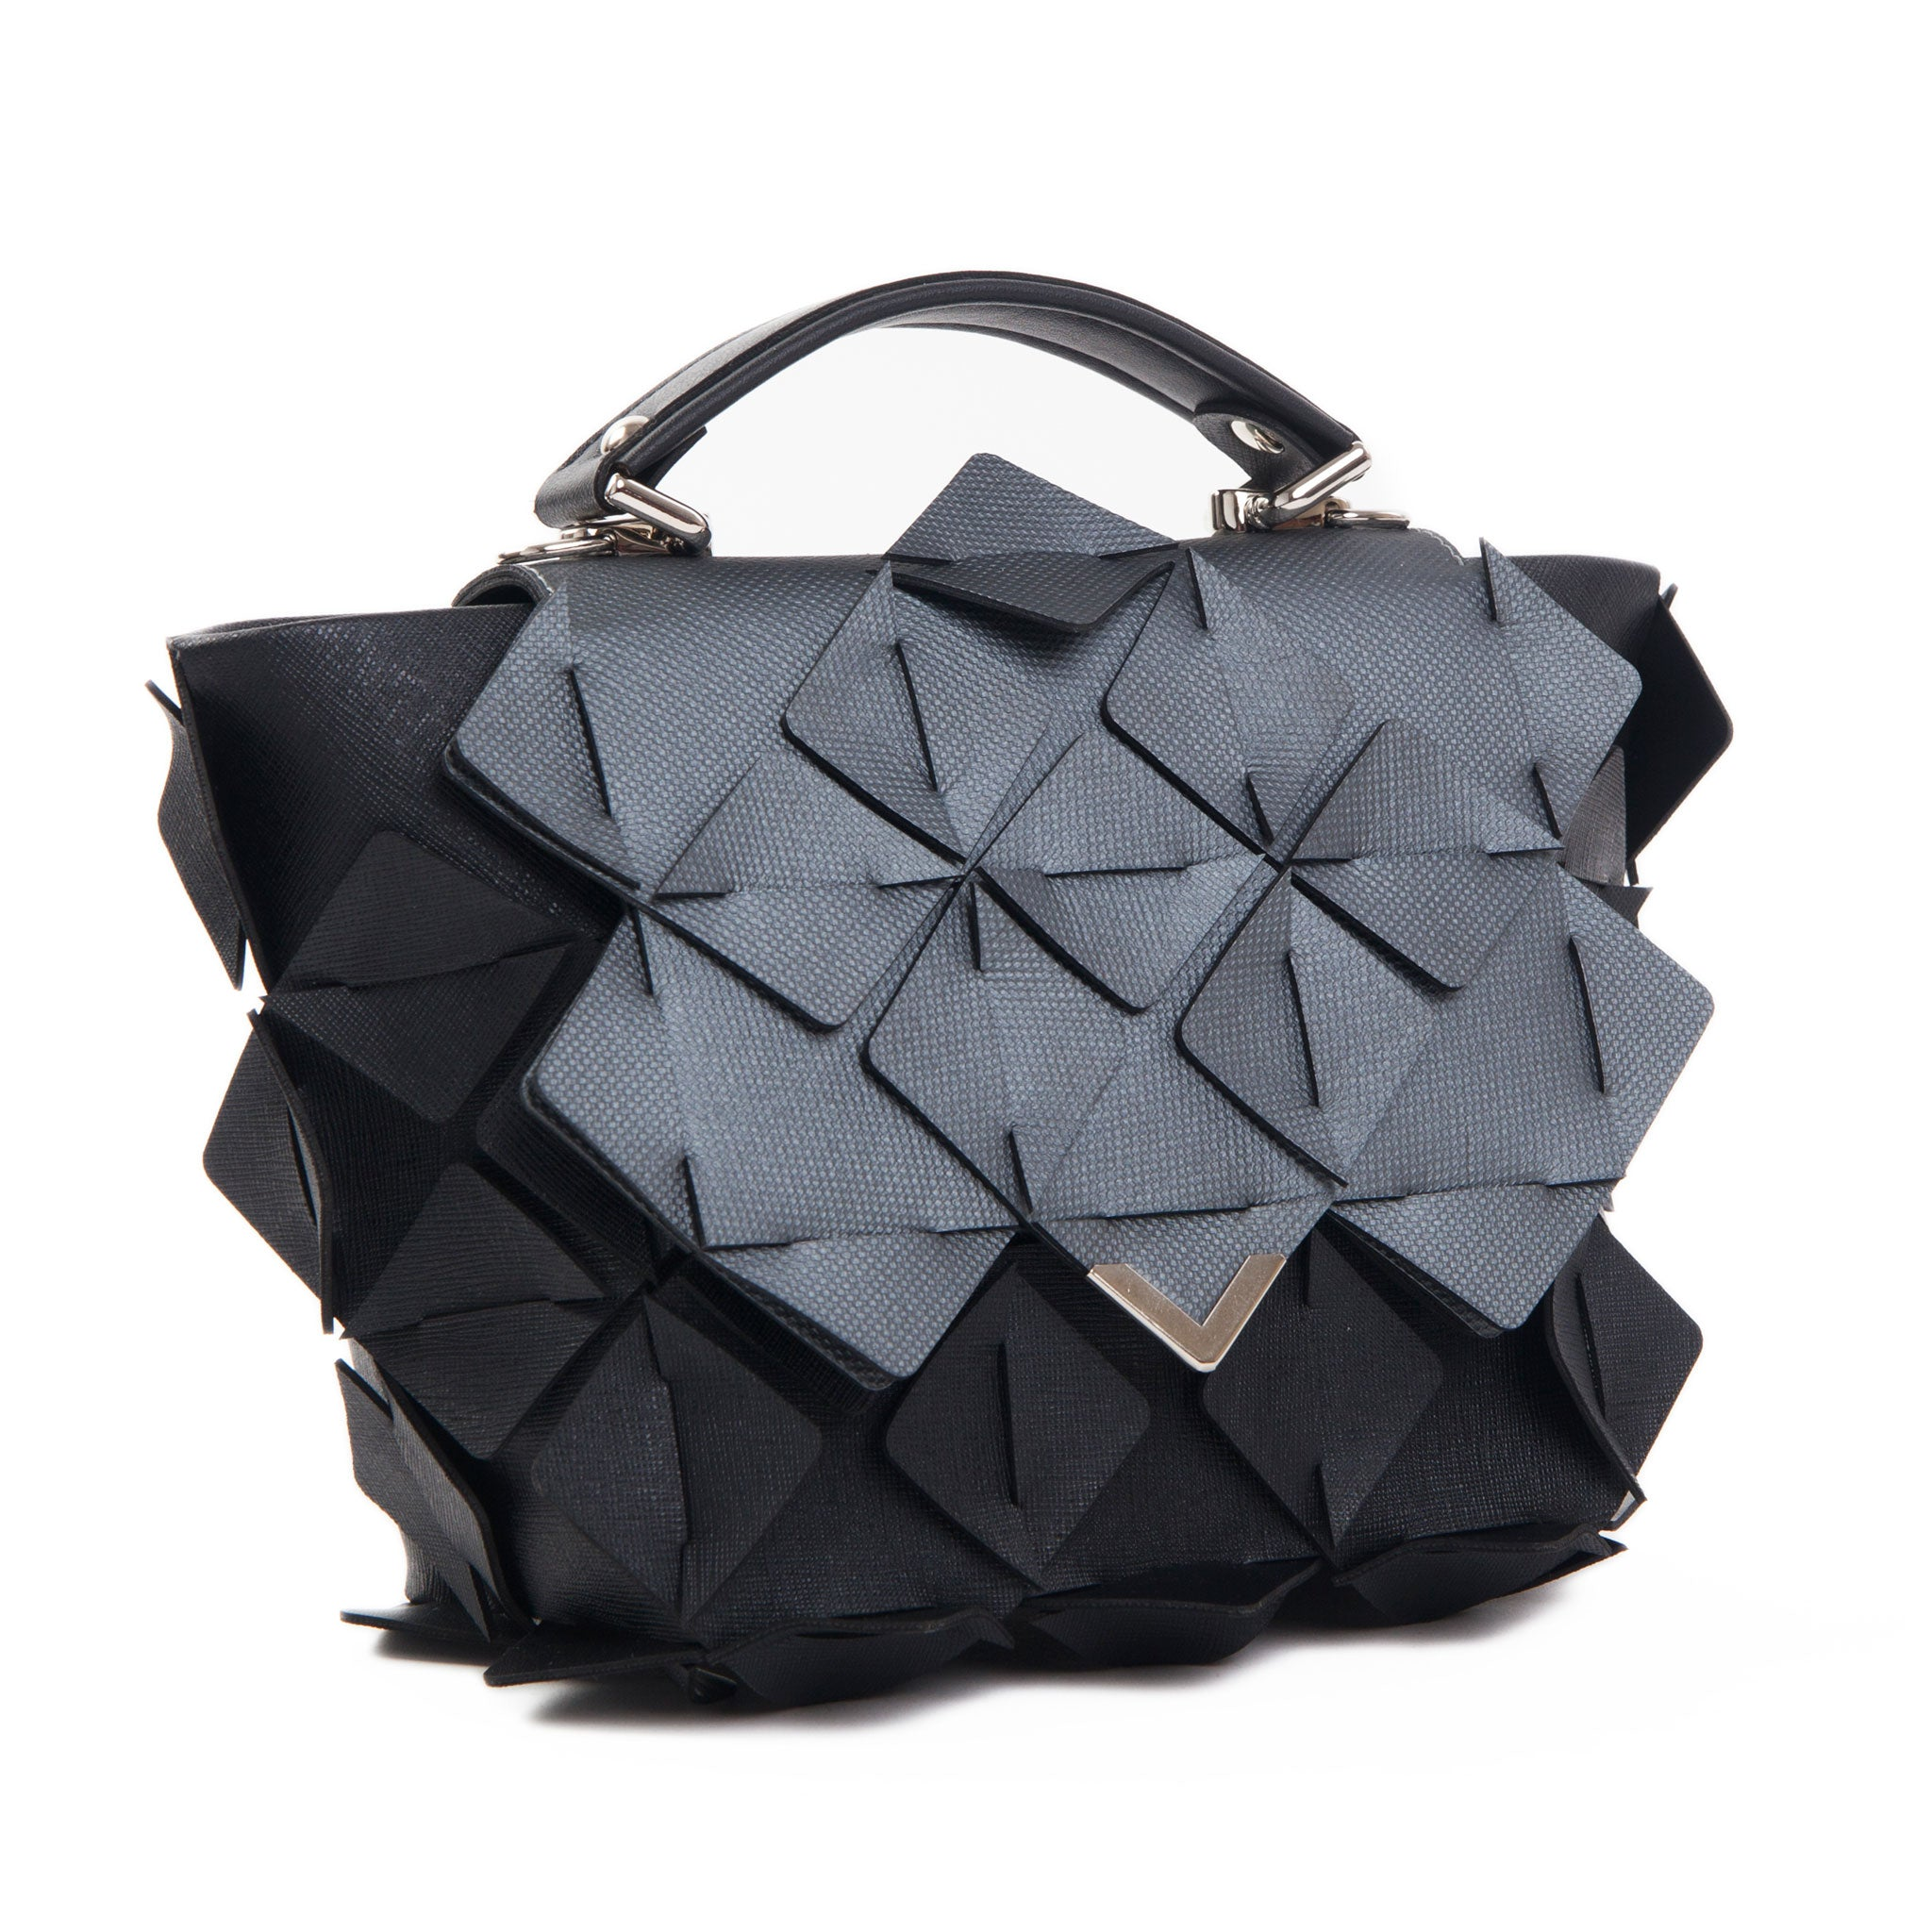 DIAMOND BAG Crystal black&grey